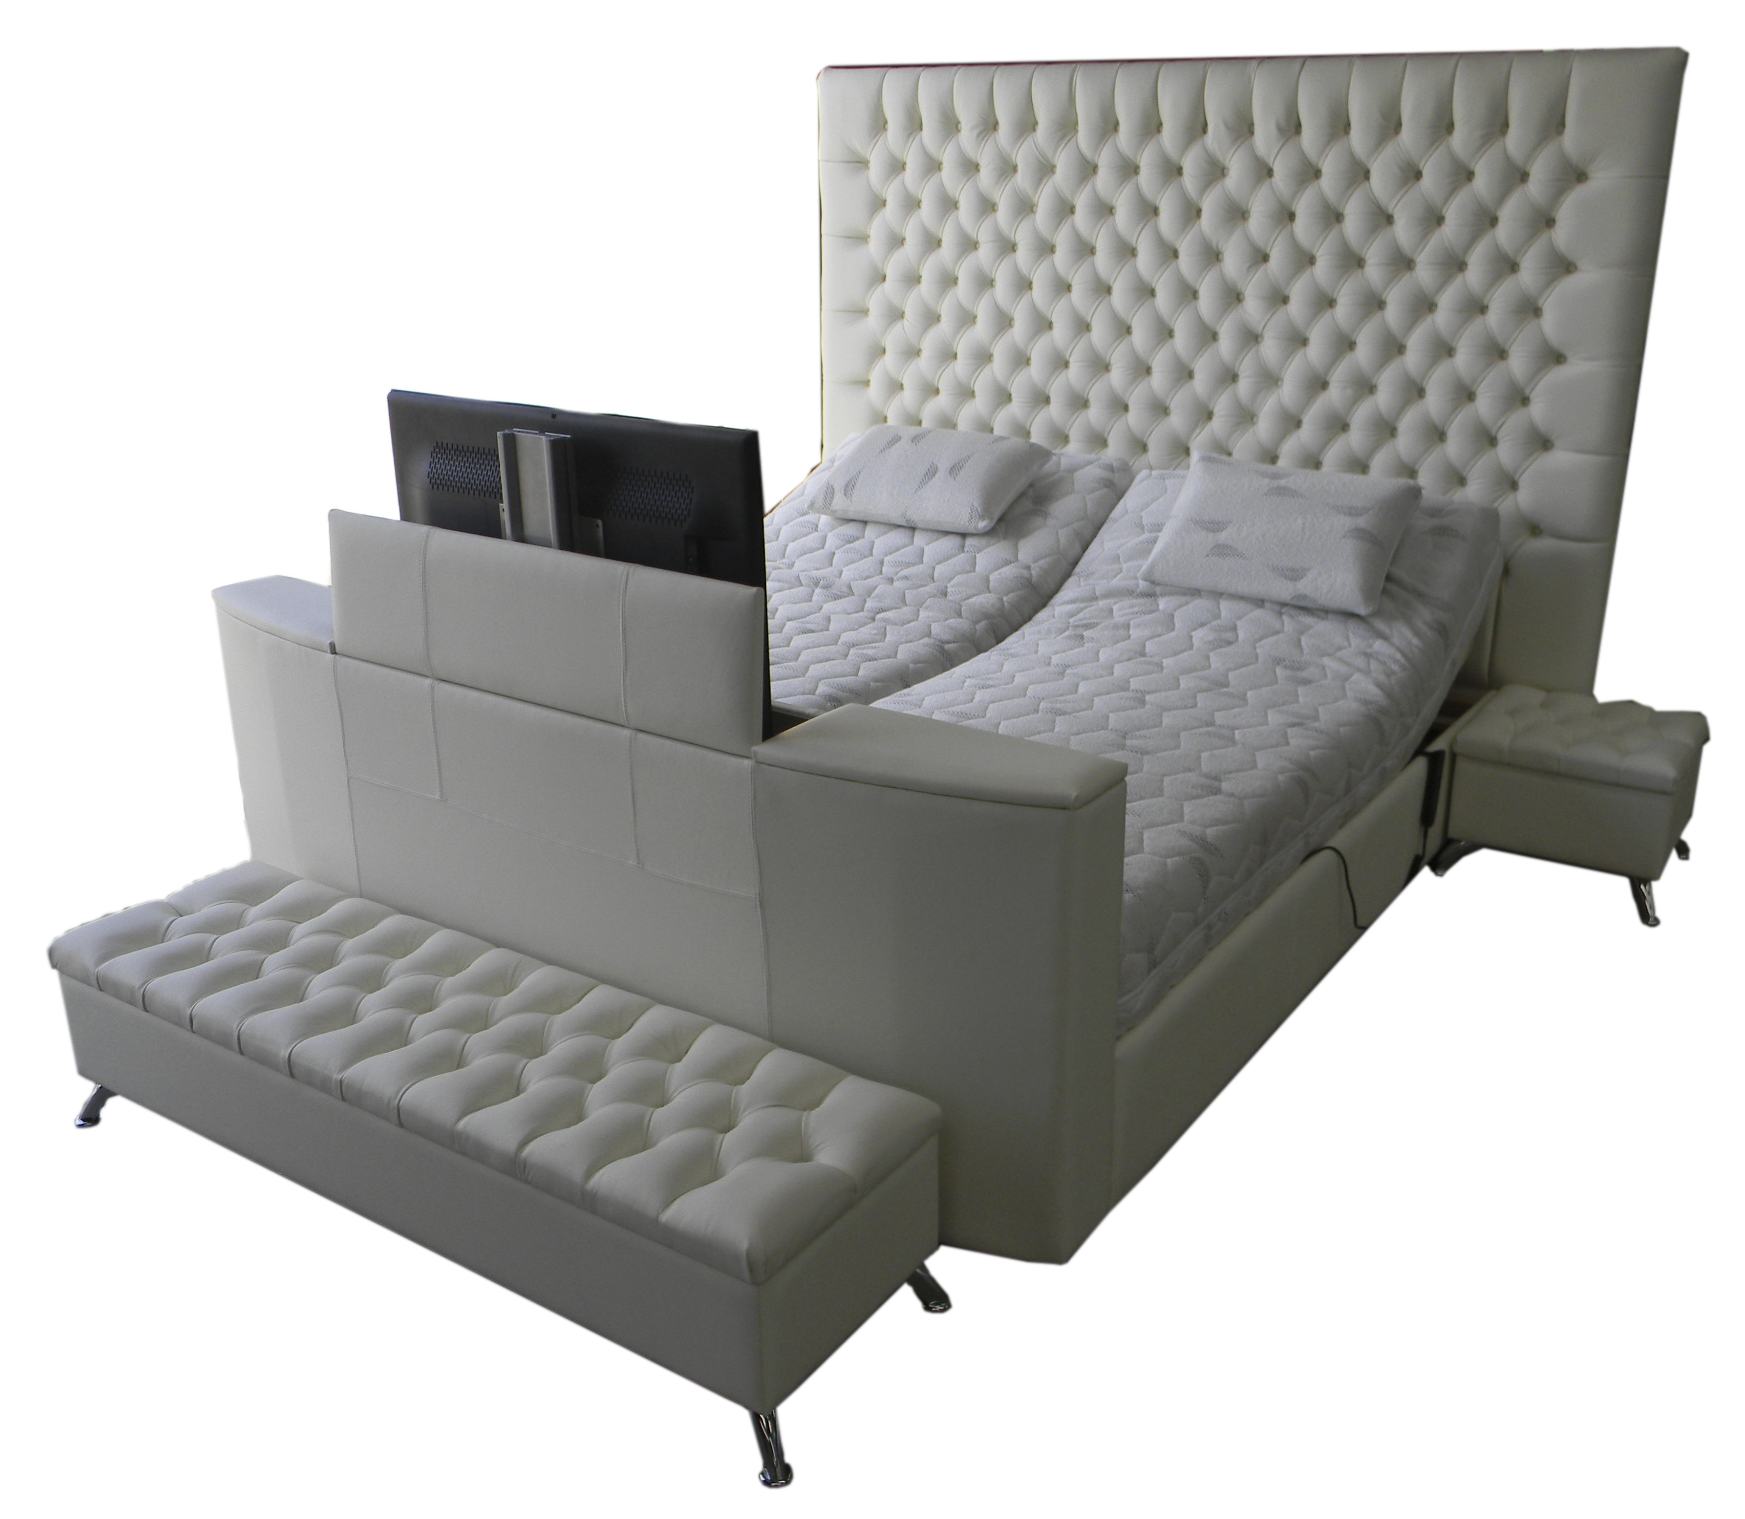 beds bnr why original exclusive ultramatic adjustable ultramaticsleep bed pillow tilt an base lifestyle